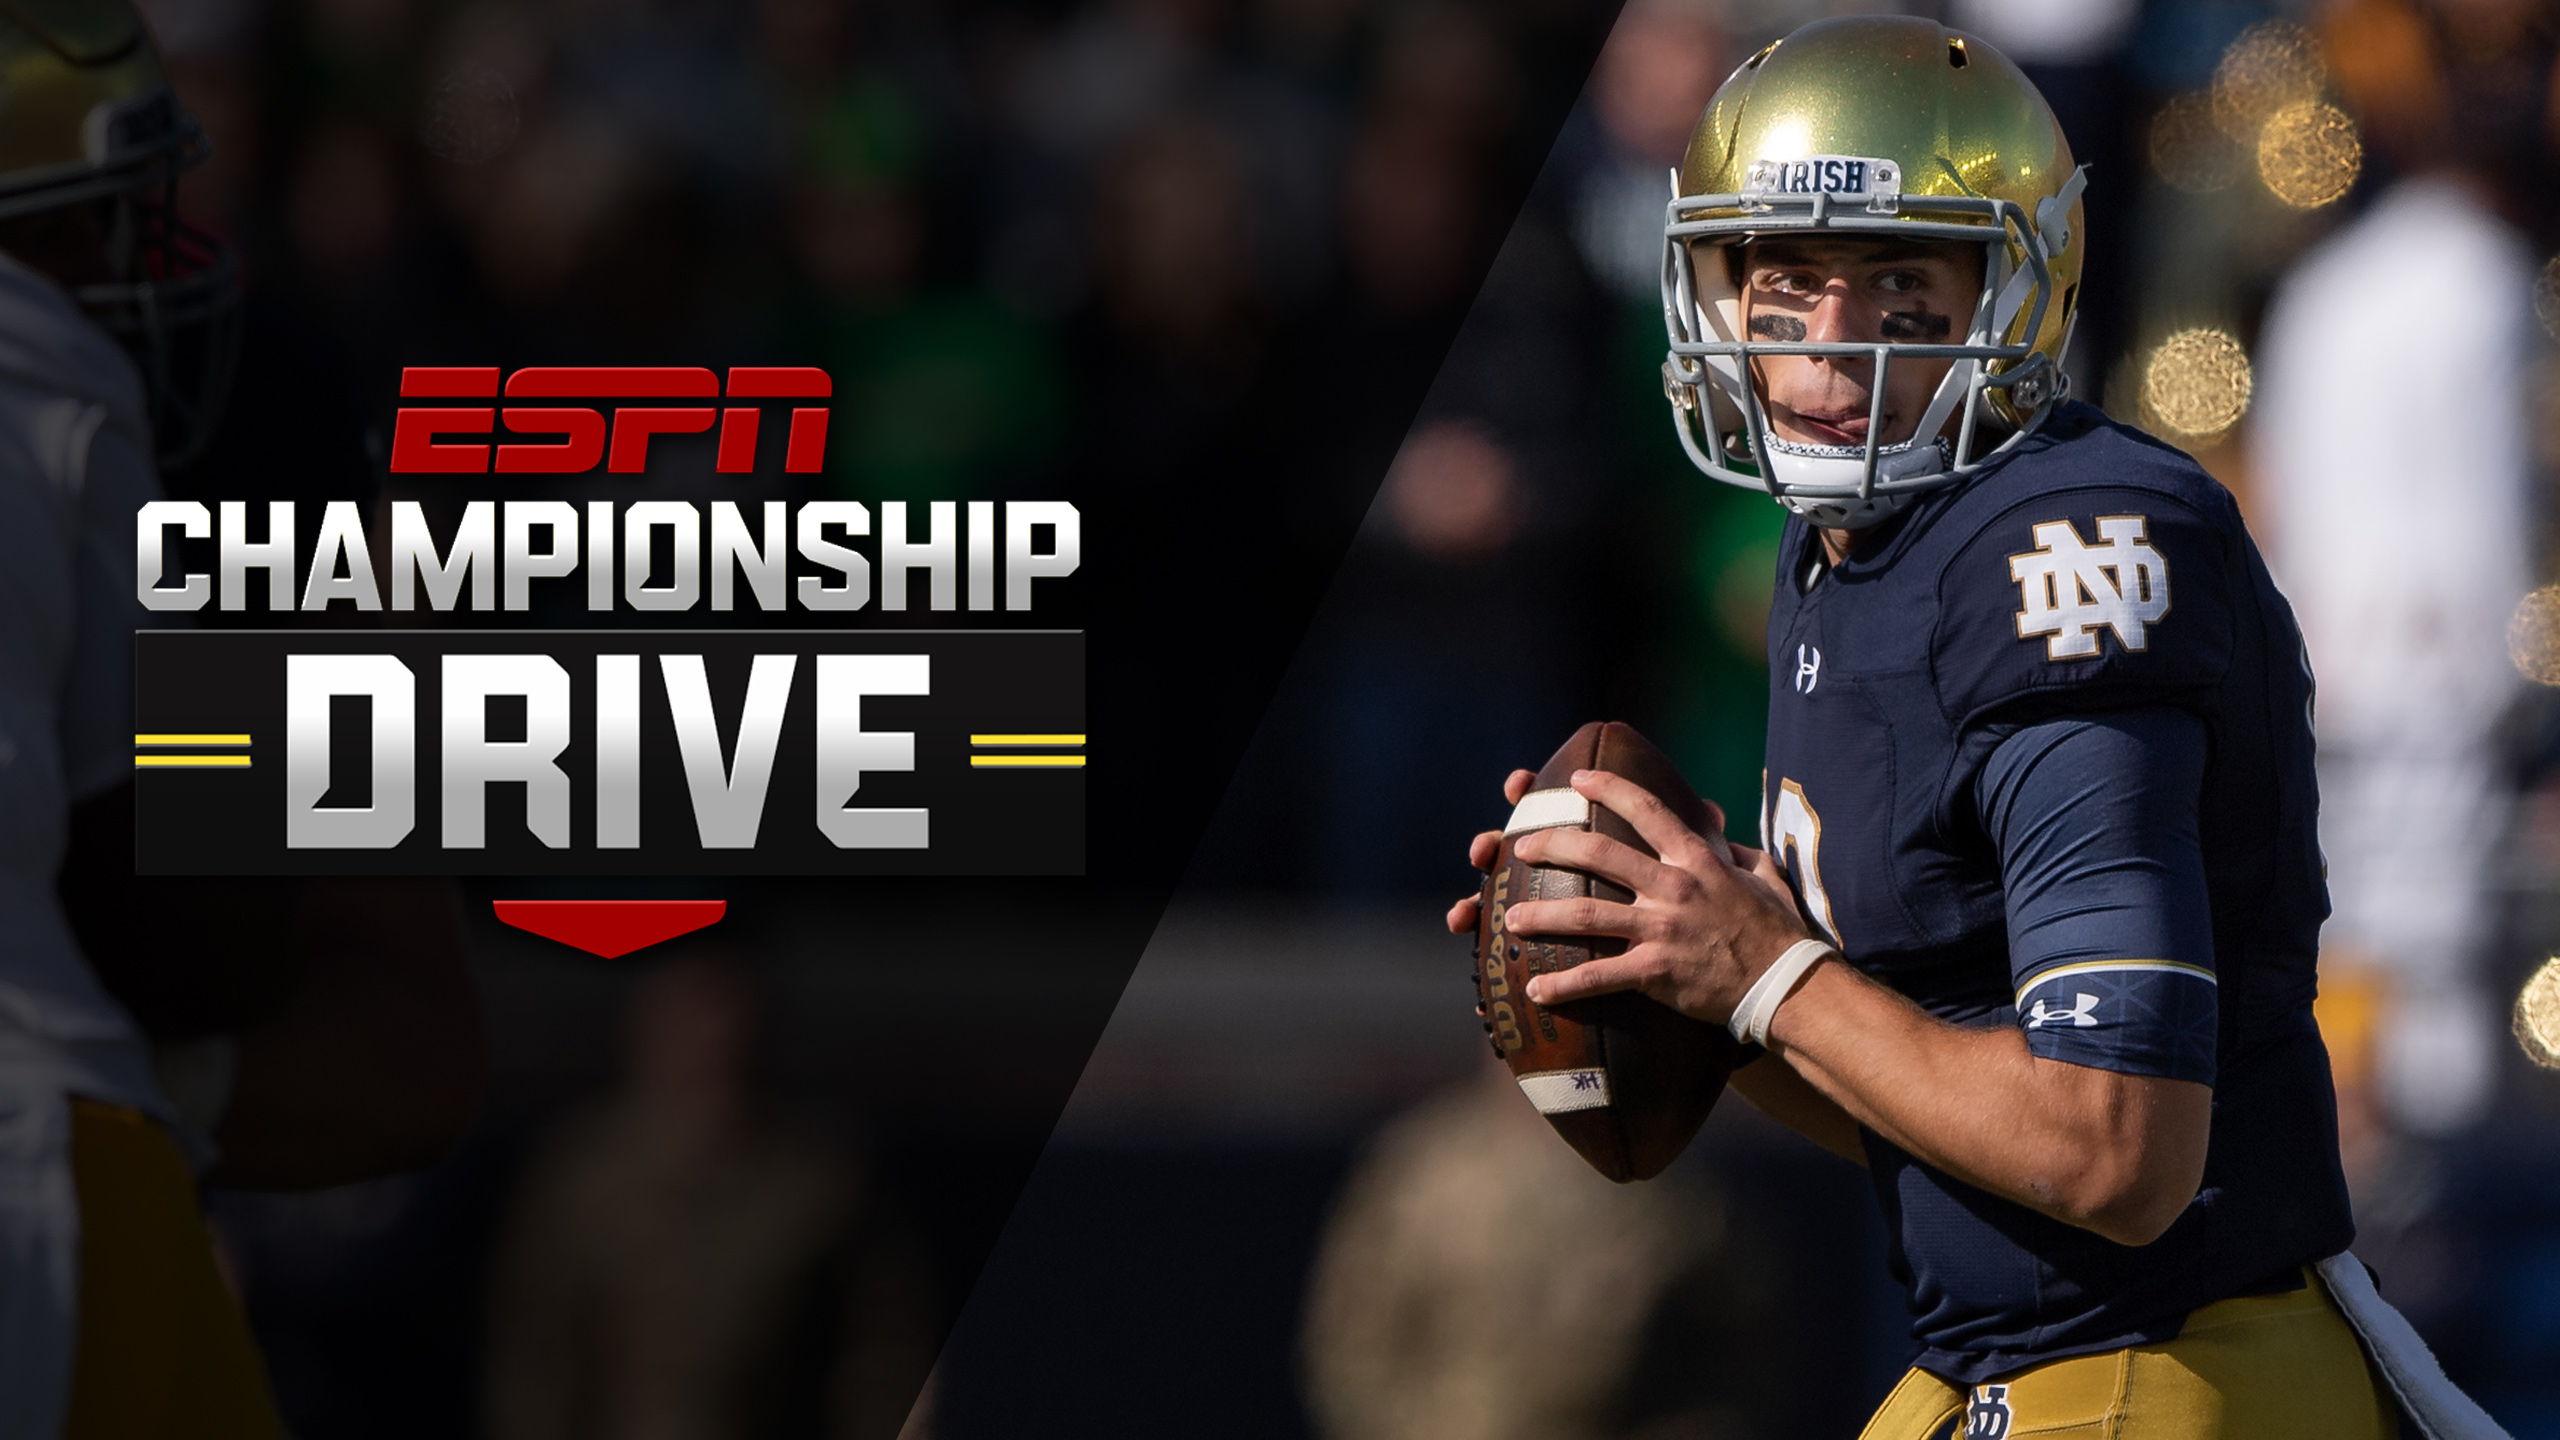 Sun, 10/14 - Championship Drive: Who's In?